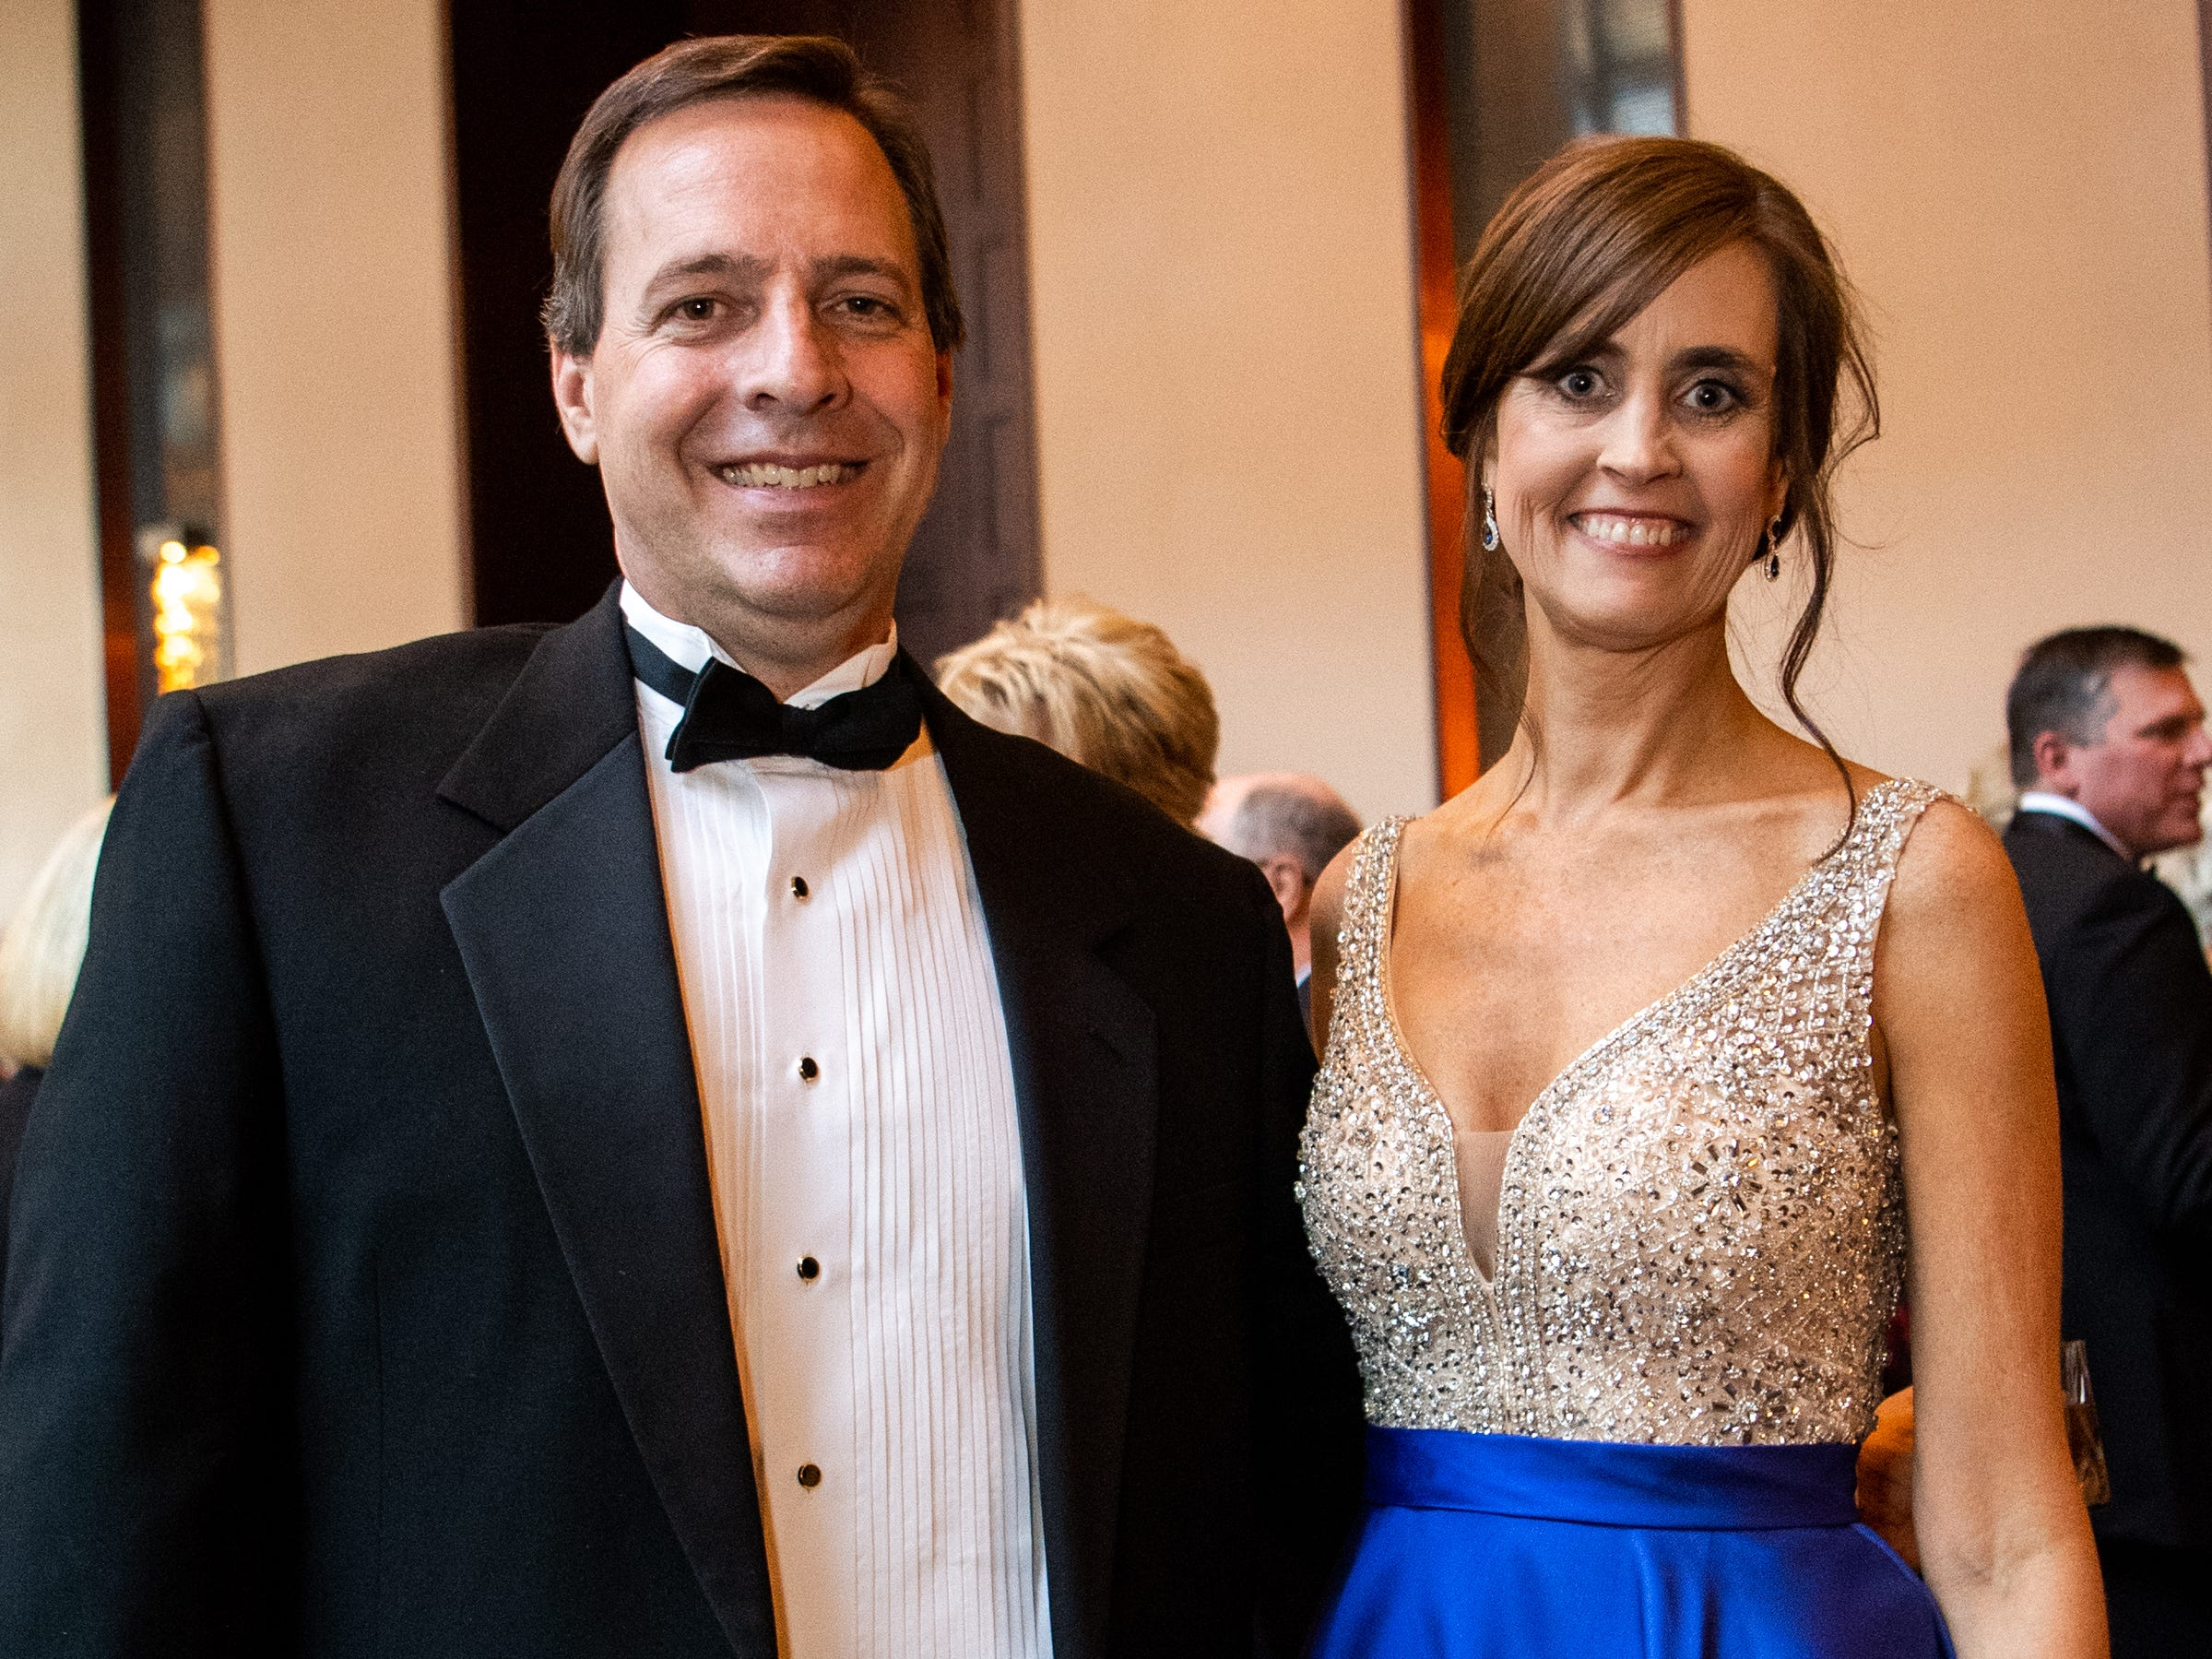 Rob and Ginna Holleman pose for a photo during Austin Peay State University's annual Candlelight Ball at the Omni Nashville Hotel Saturday, March 16, 2019, in Nashville, Tenn.